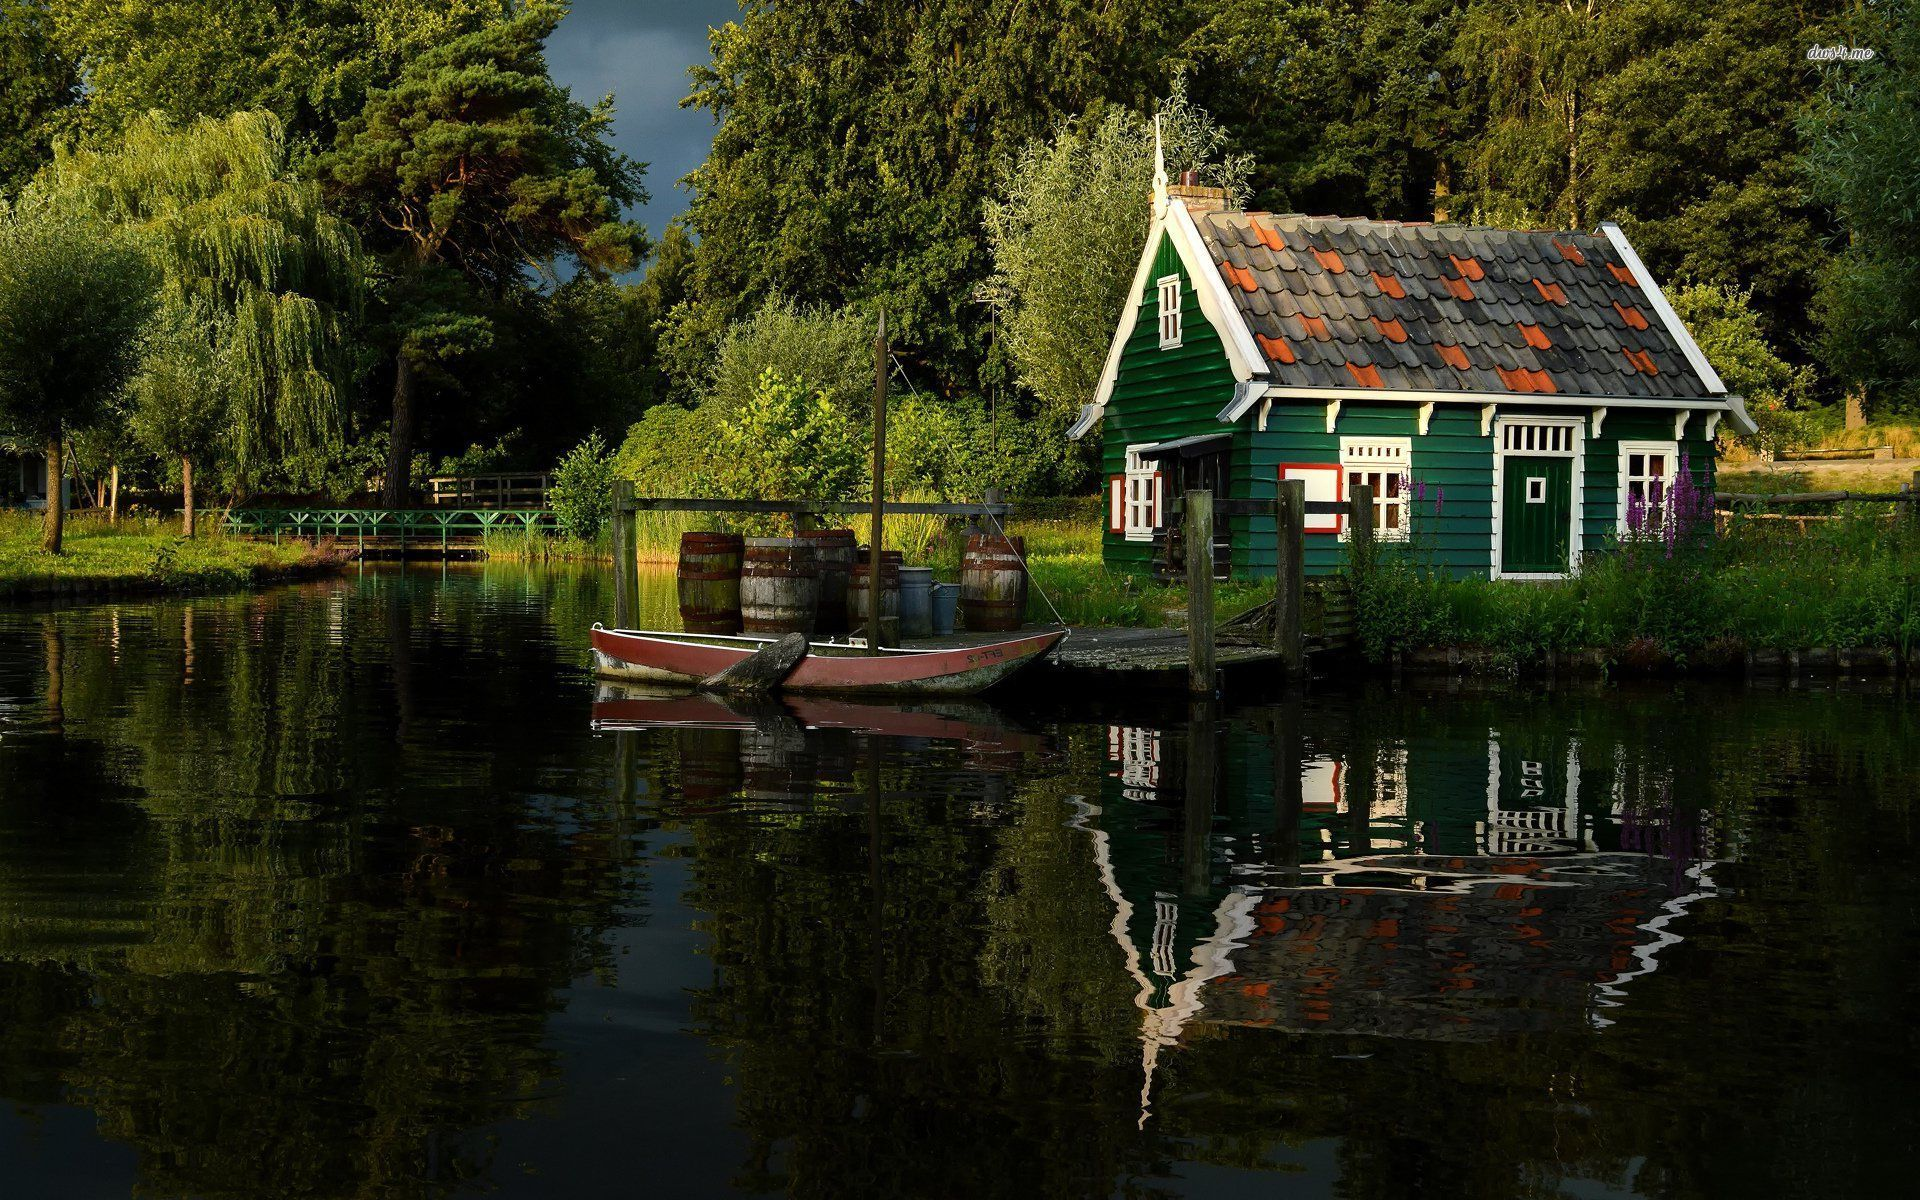 Small House On The River Side Photography Wallpapers On